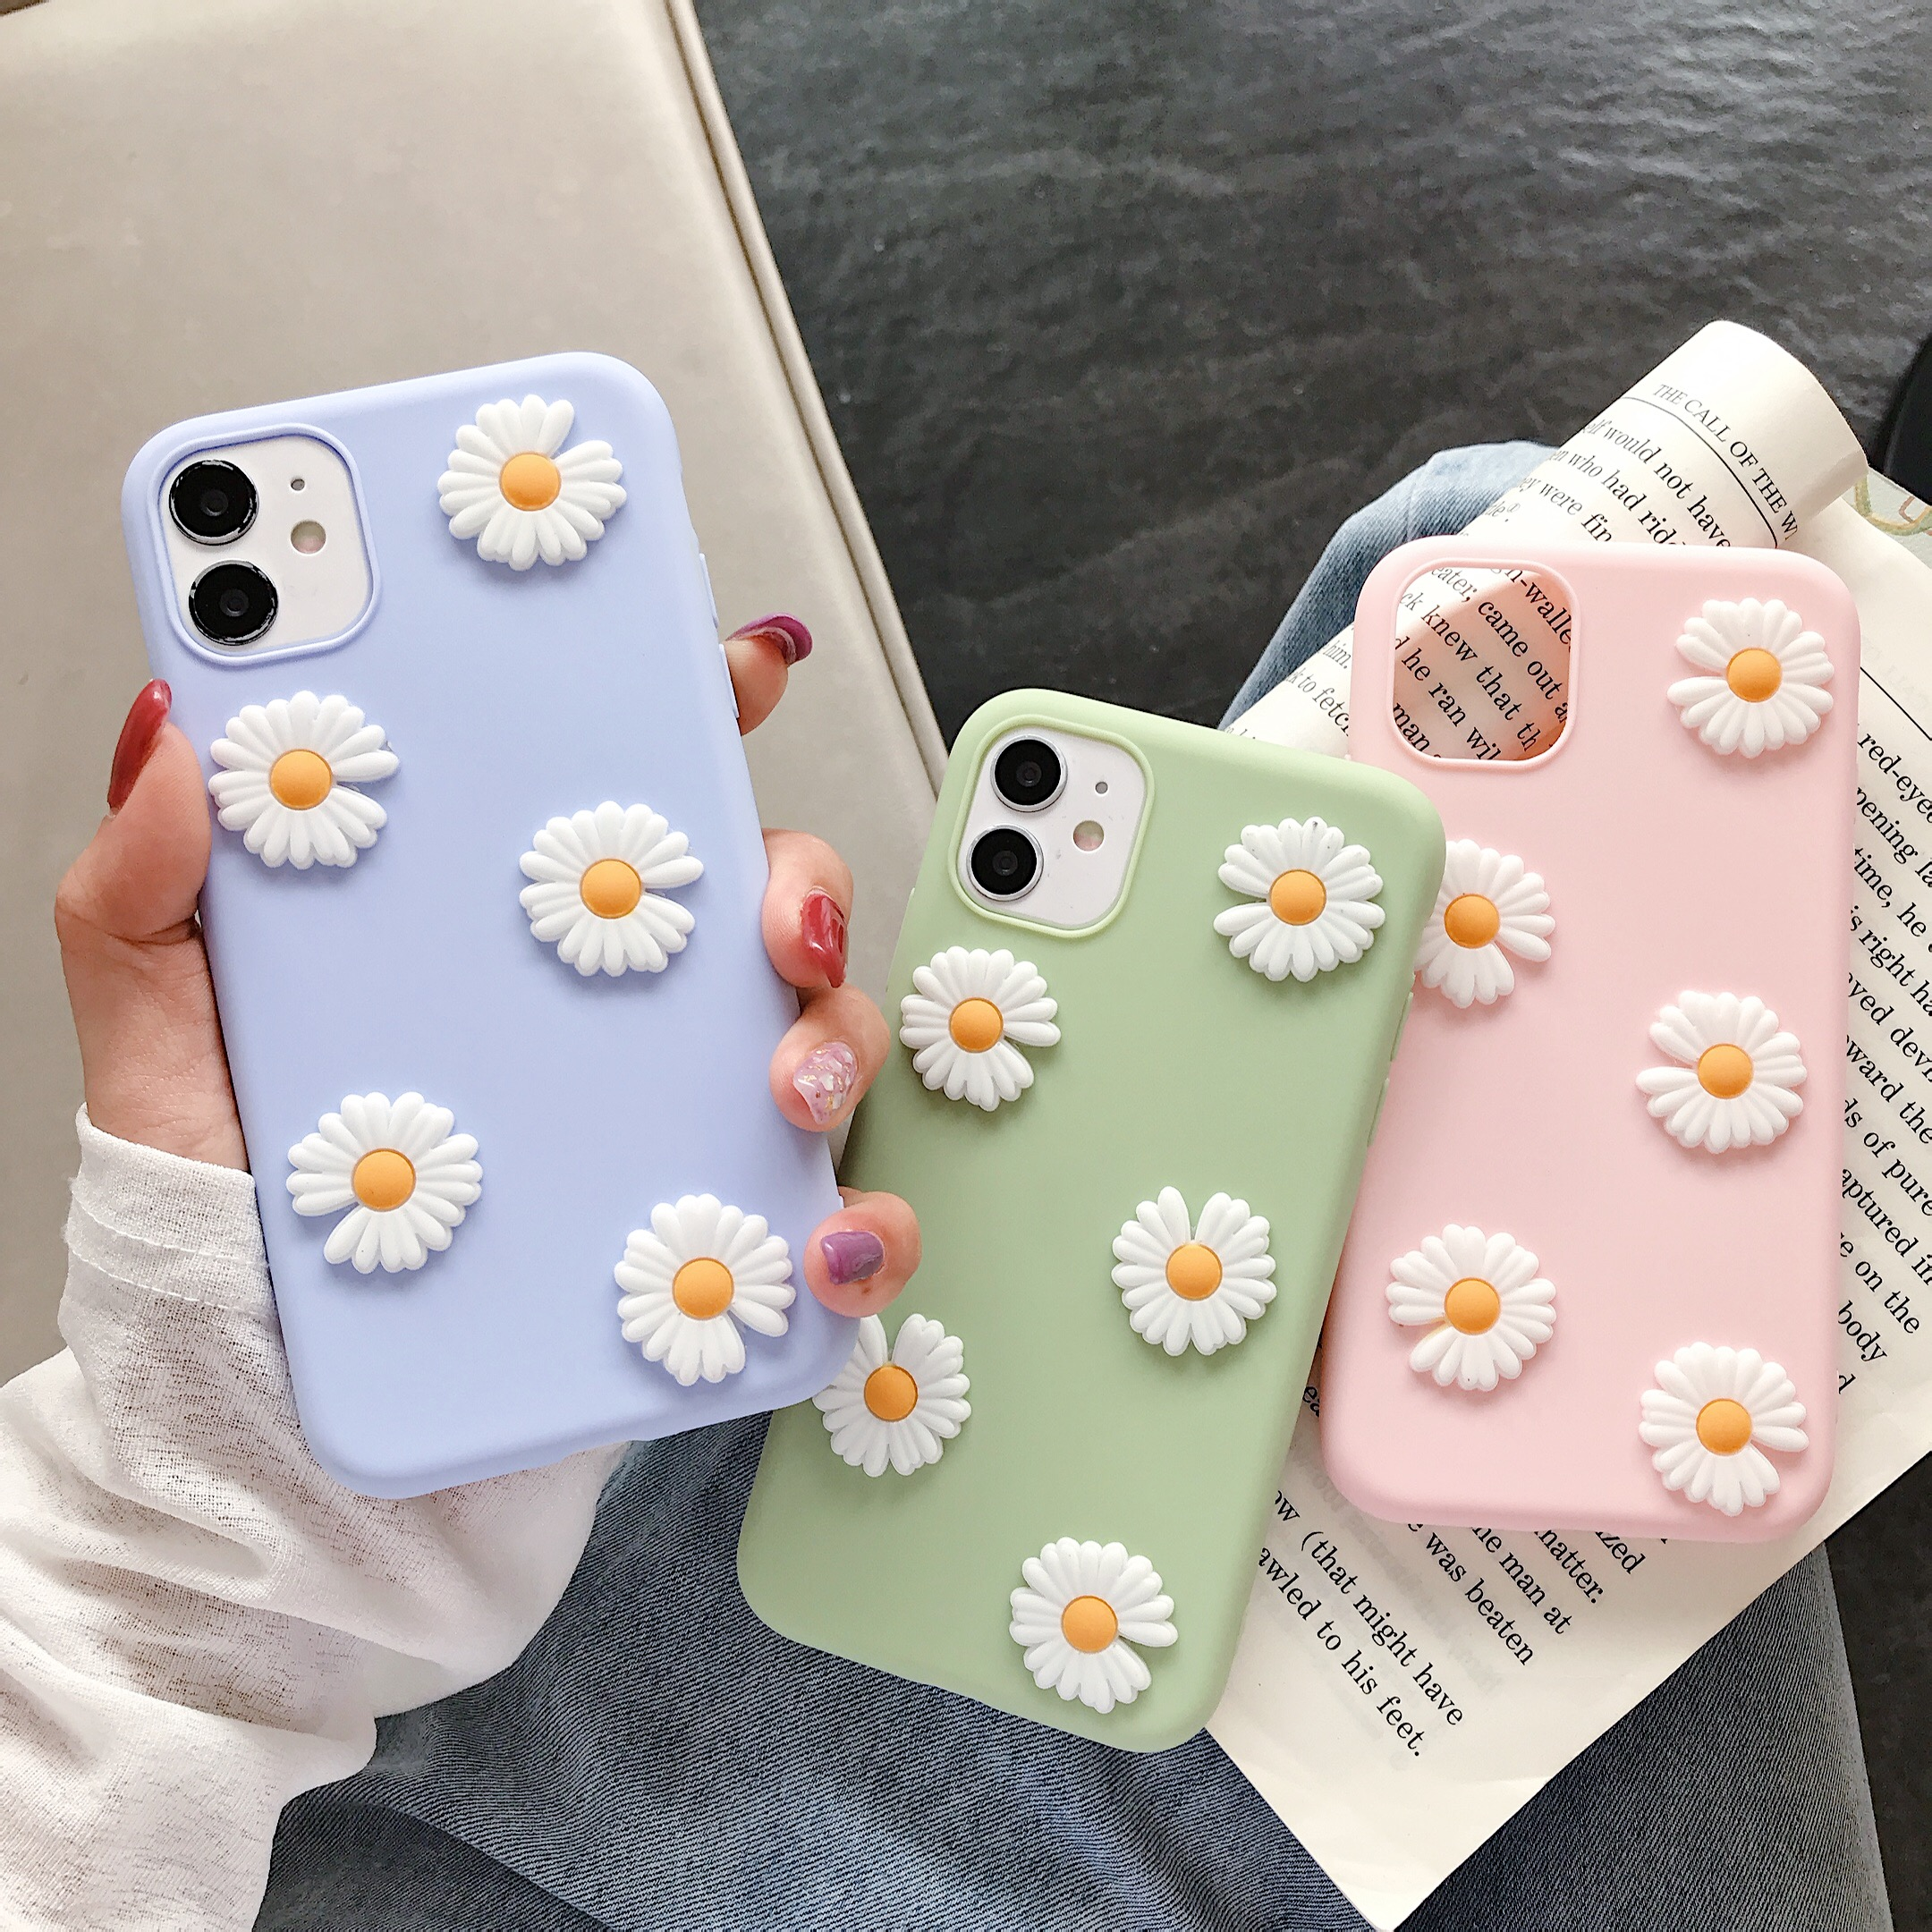 ins Cute 3D Daisy <font><b>Silicone</b></font> Soft Phone <font><b>Case</b></font> For <font><b>Samsung</b></font> Galaxy S10 S20 S6 <font><b>S7</b></font> S8 S9 S10E <font><b>edge</b></font> Lite Plus + Note 8 9 5 10 Pro Ultra image